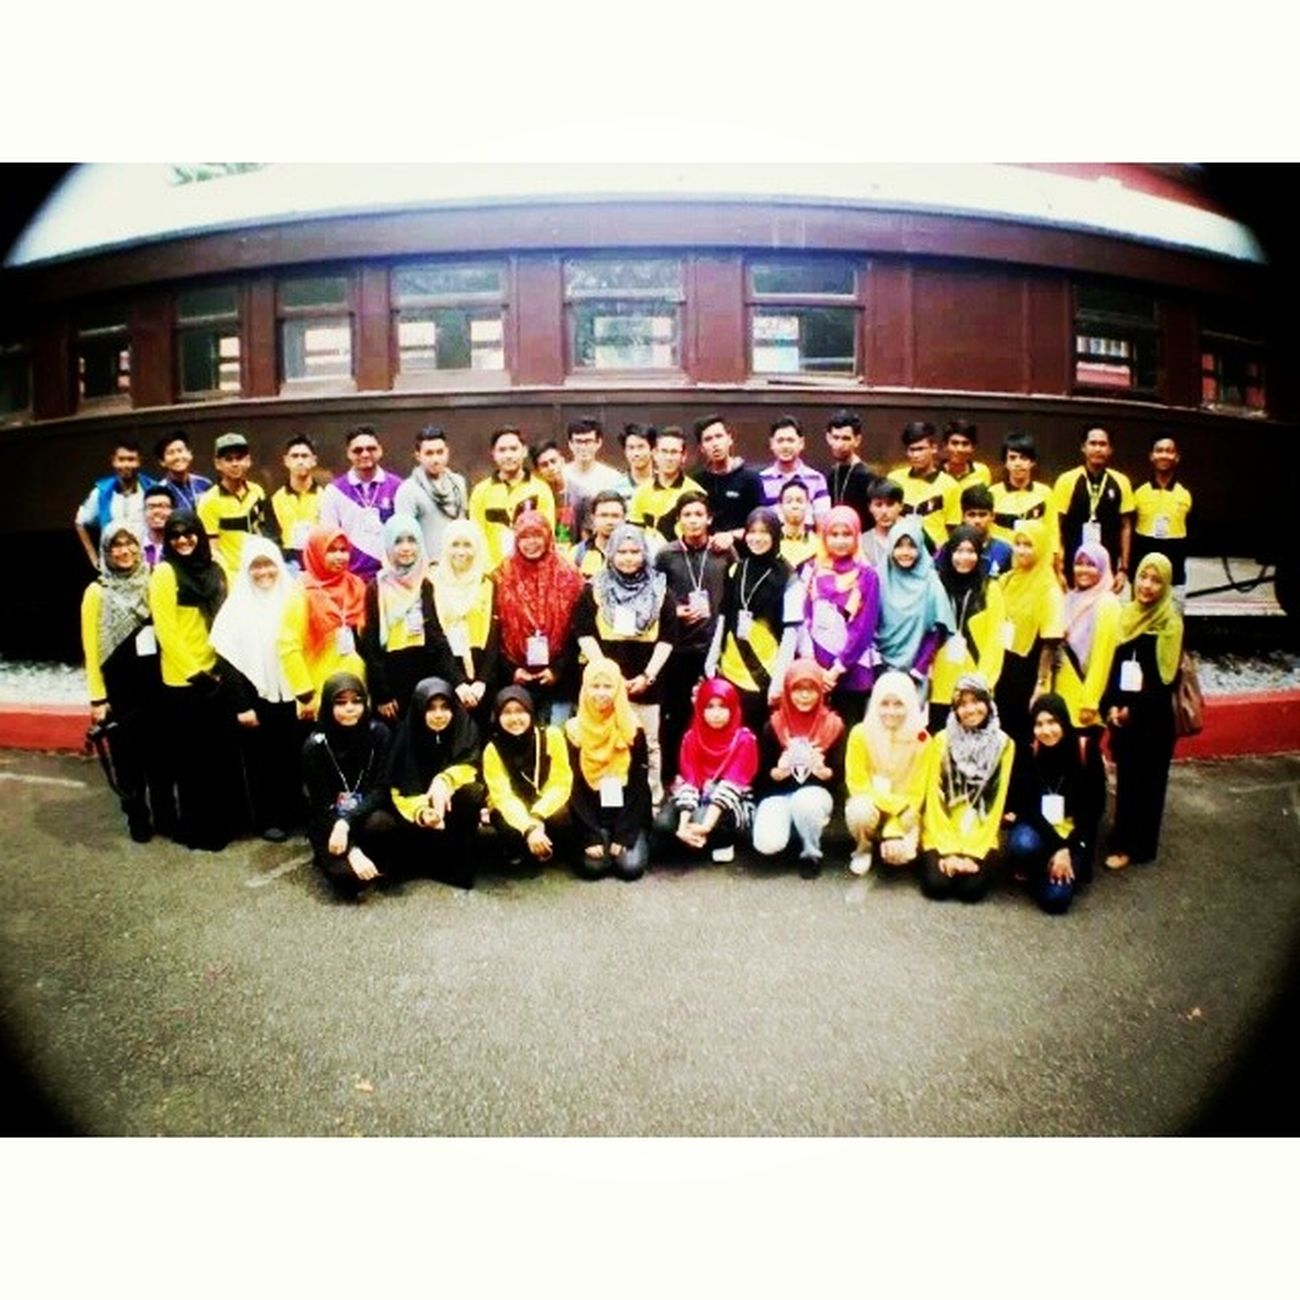 Awesom trip with awesome people ! ^_^ that is why I love my KolejInderaSakti JPK Seki Family UitmPerak MelakaDiHati